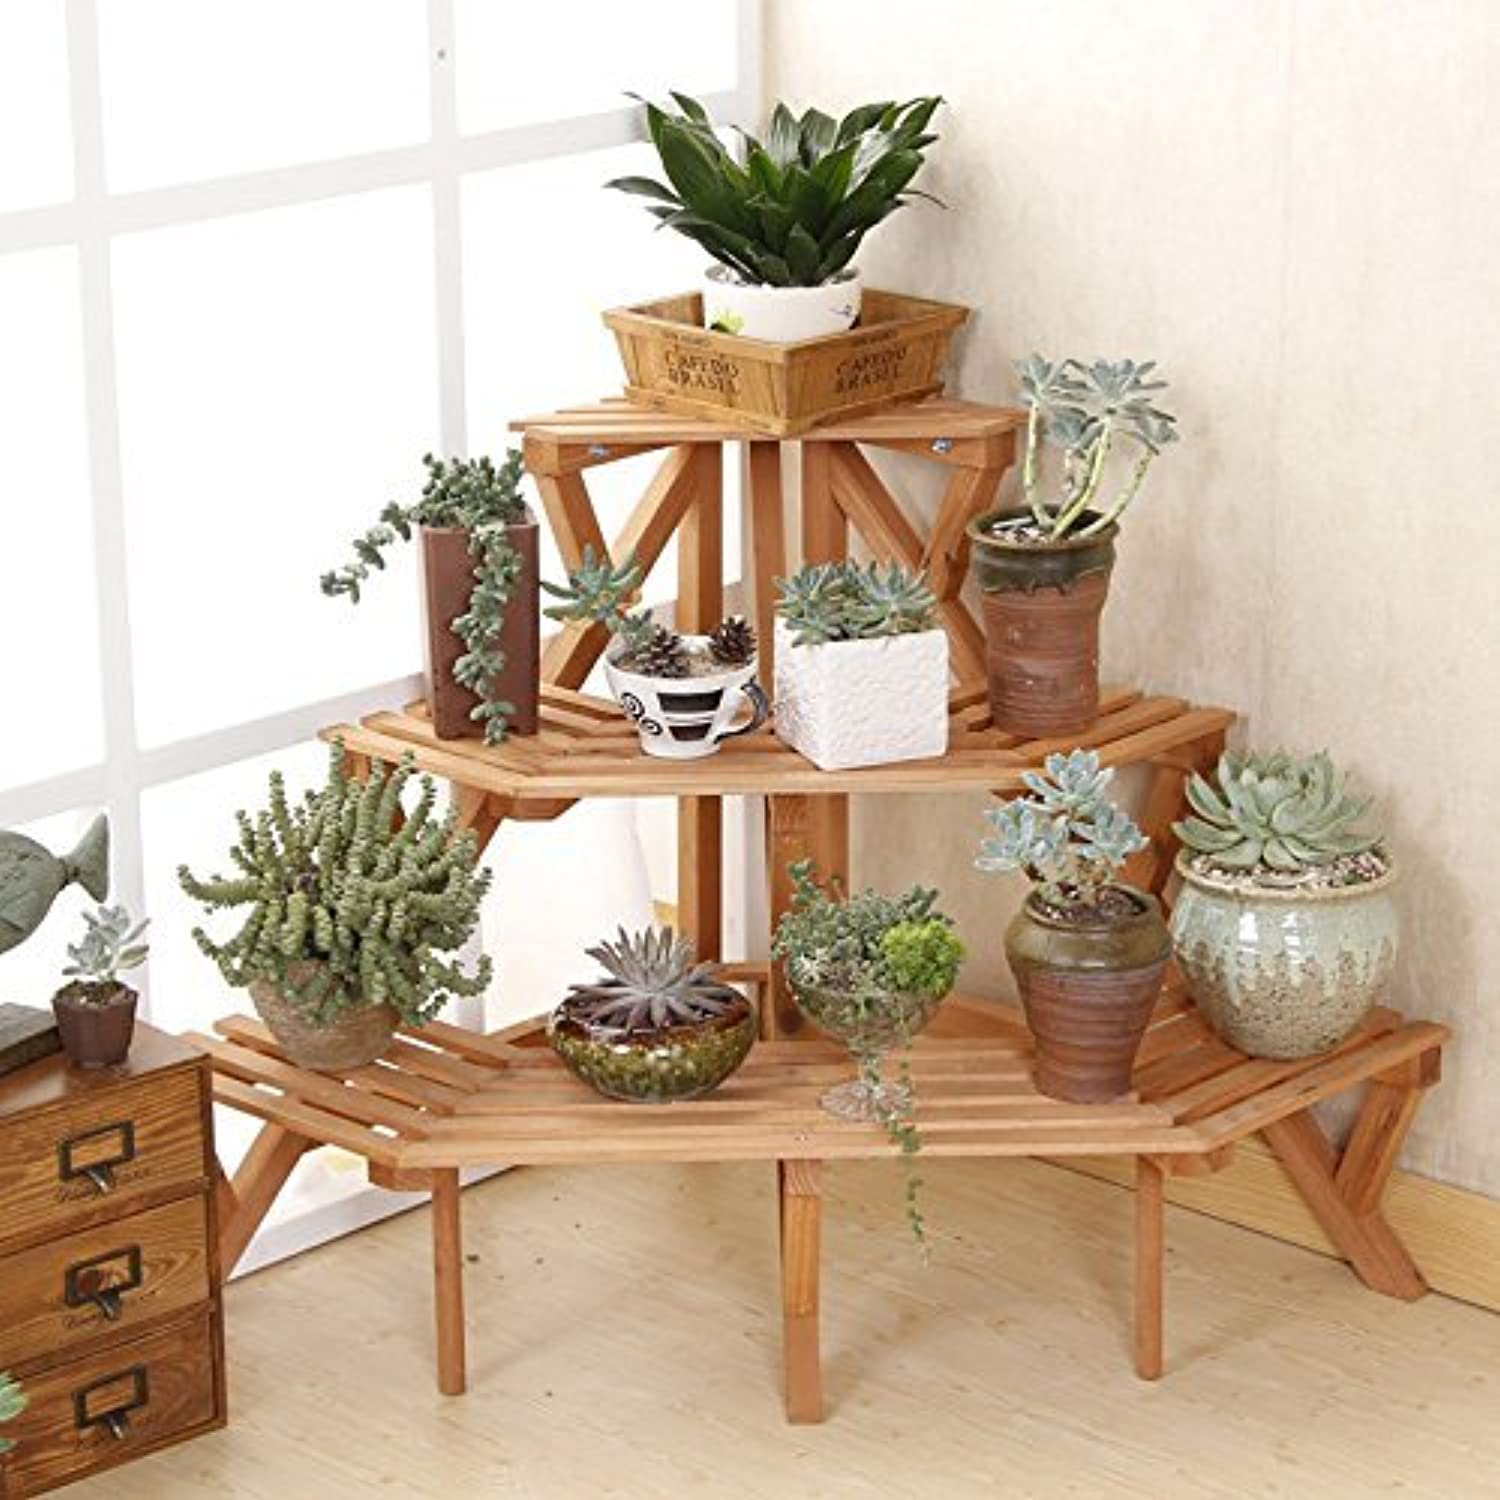 2016 new style 3 tier fir wood conner standing flower pot rack step style plant display stand - Corner shelf for plants ...